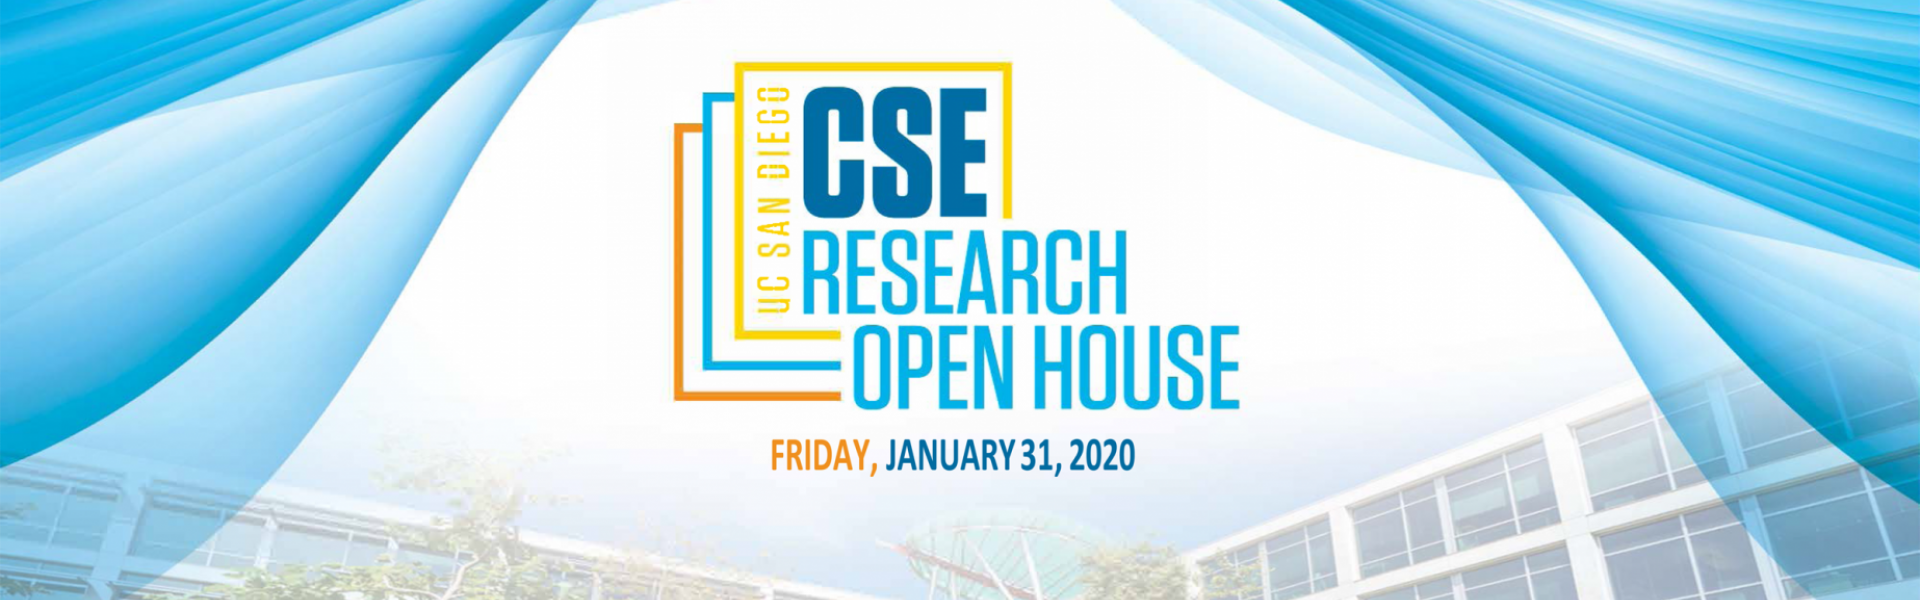 CSE Open House Open 2020